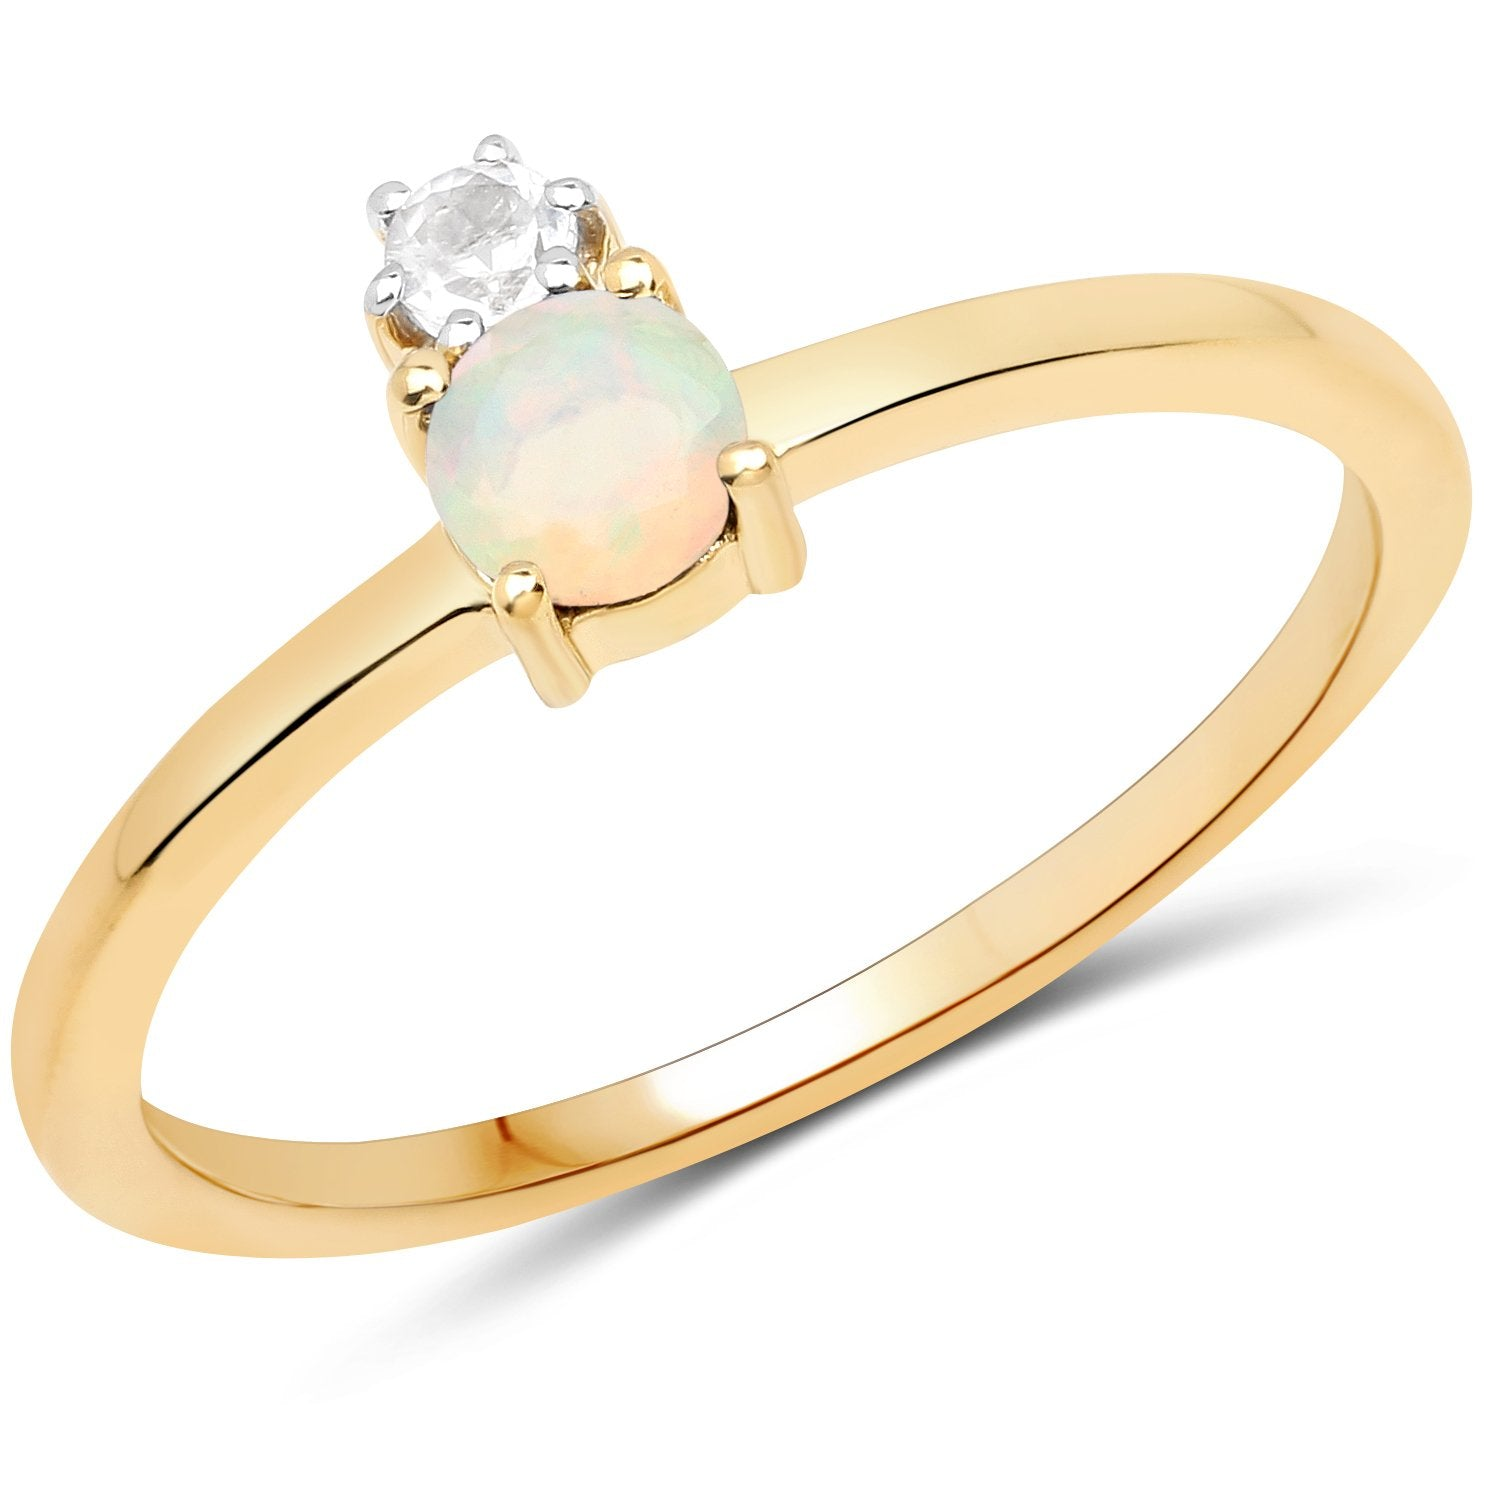 LoveHuang 0.22 Carats Genuine Ethiopian Opal and White Topaz Ring Solid .925 Sterling Silver With 18KT Yellow Gold Plating